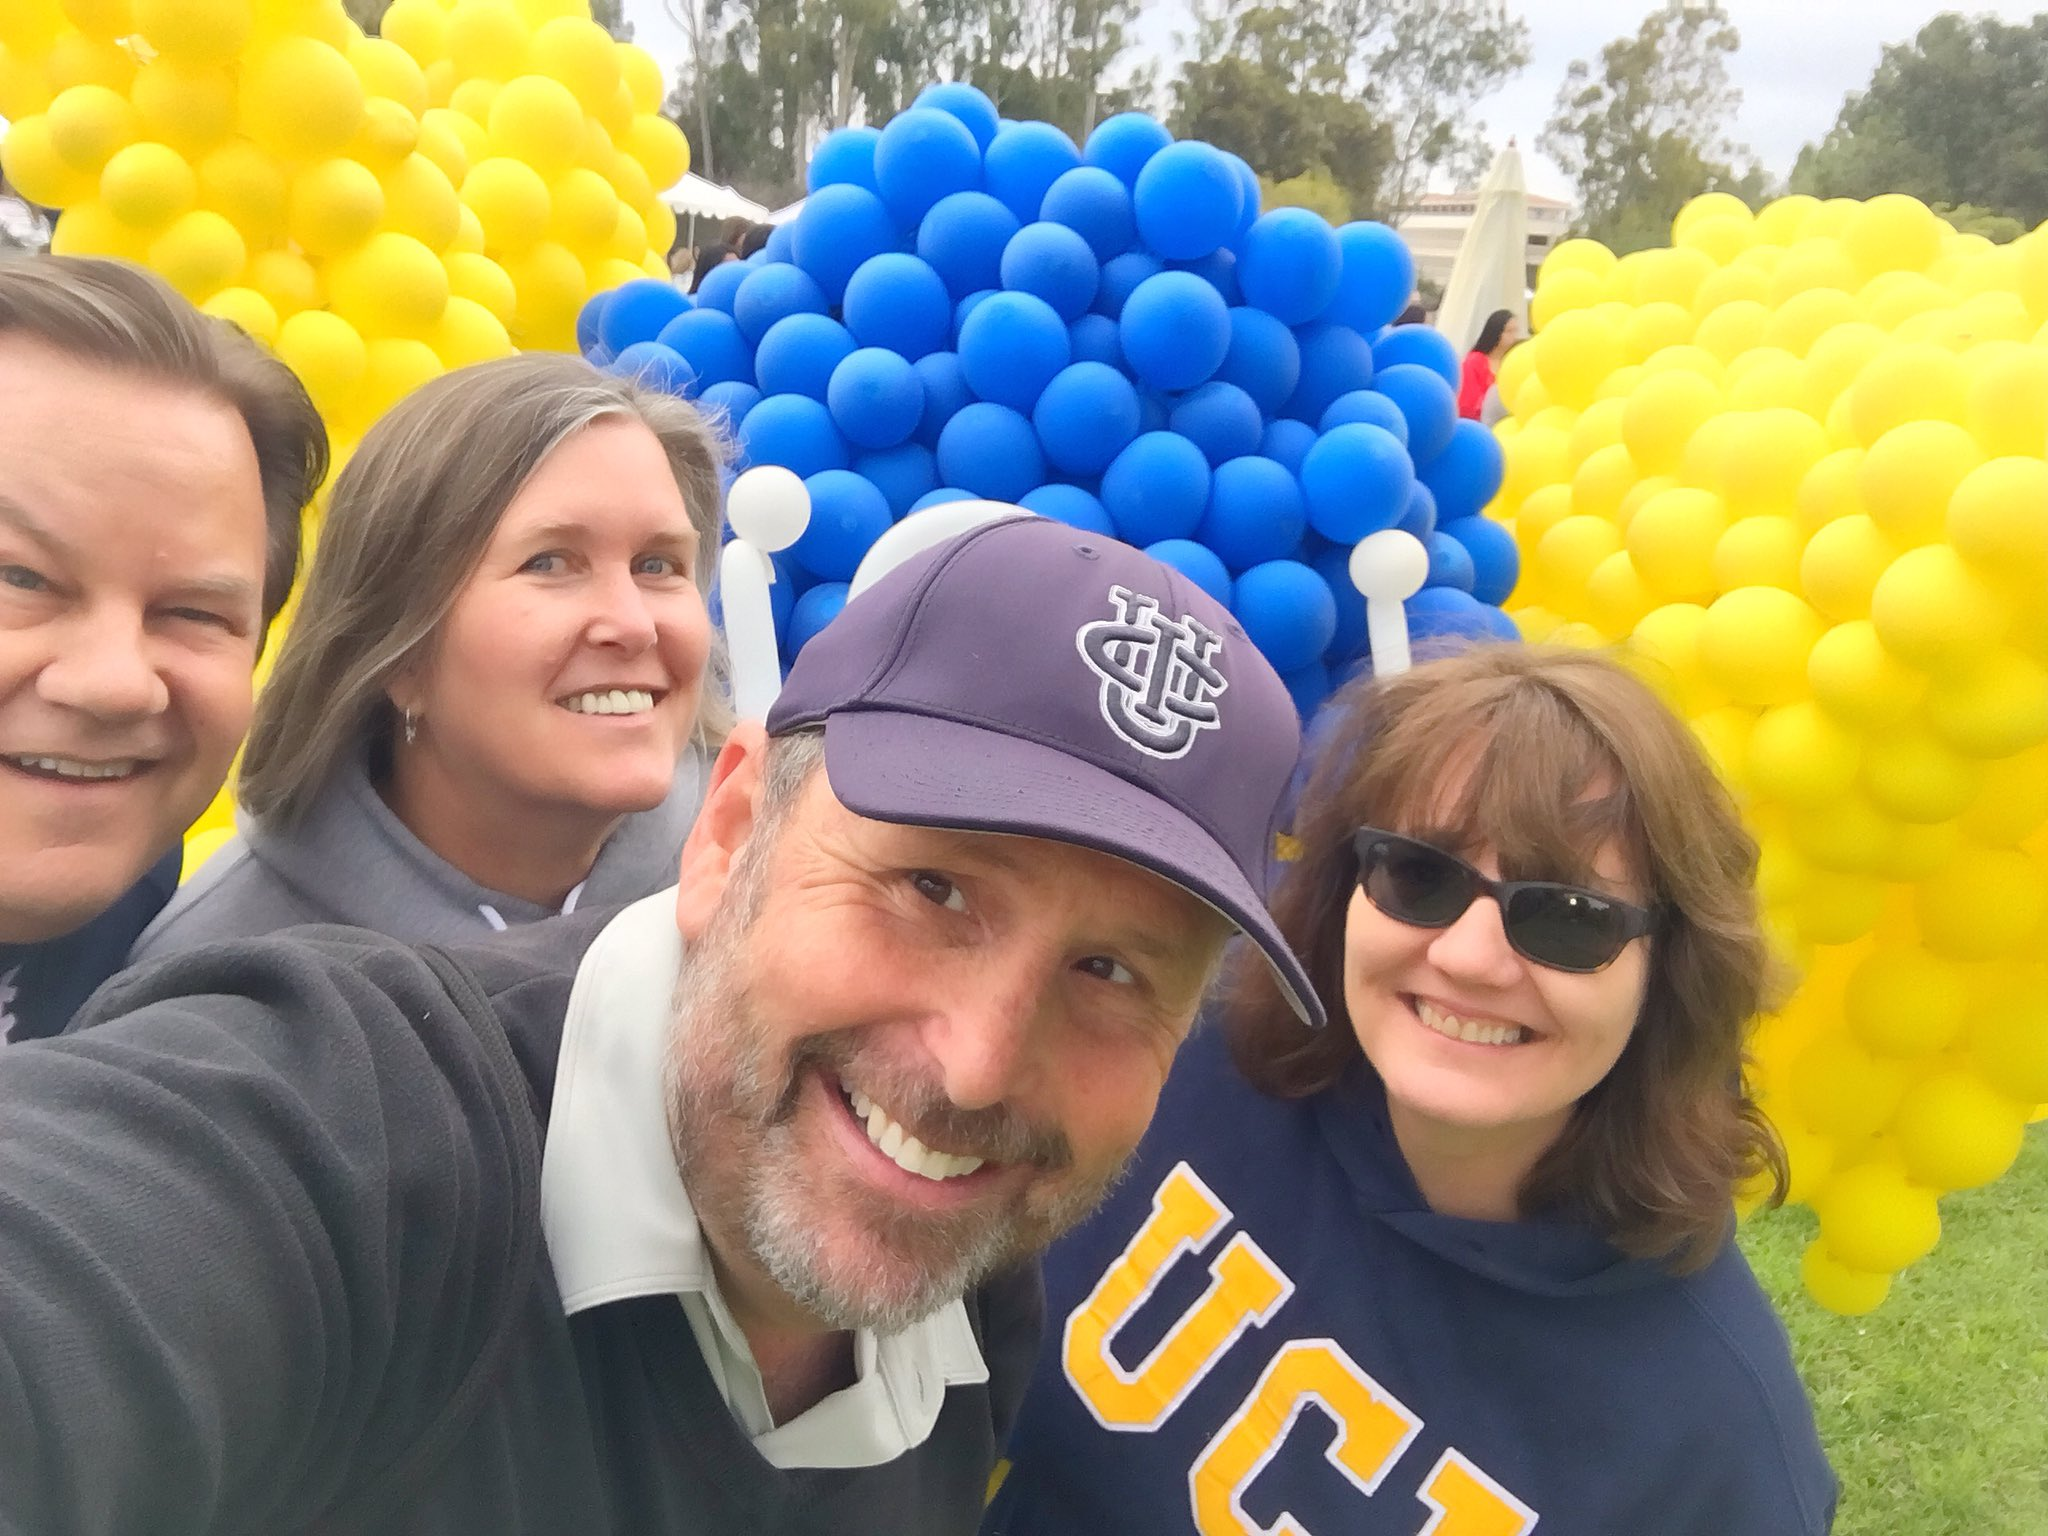 Early 80s @ucisocsci crew #UCIHomecoming #makeyourma https://t.co/dVXAuW7500